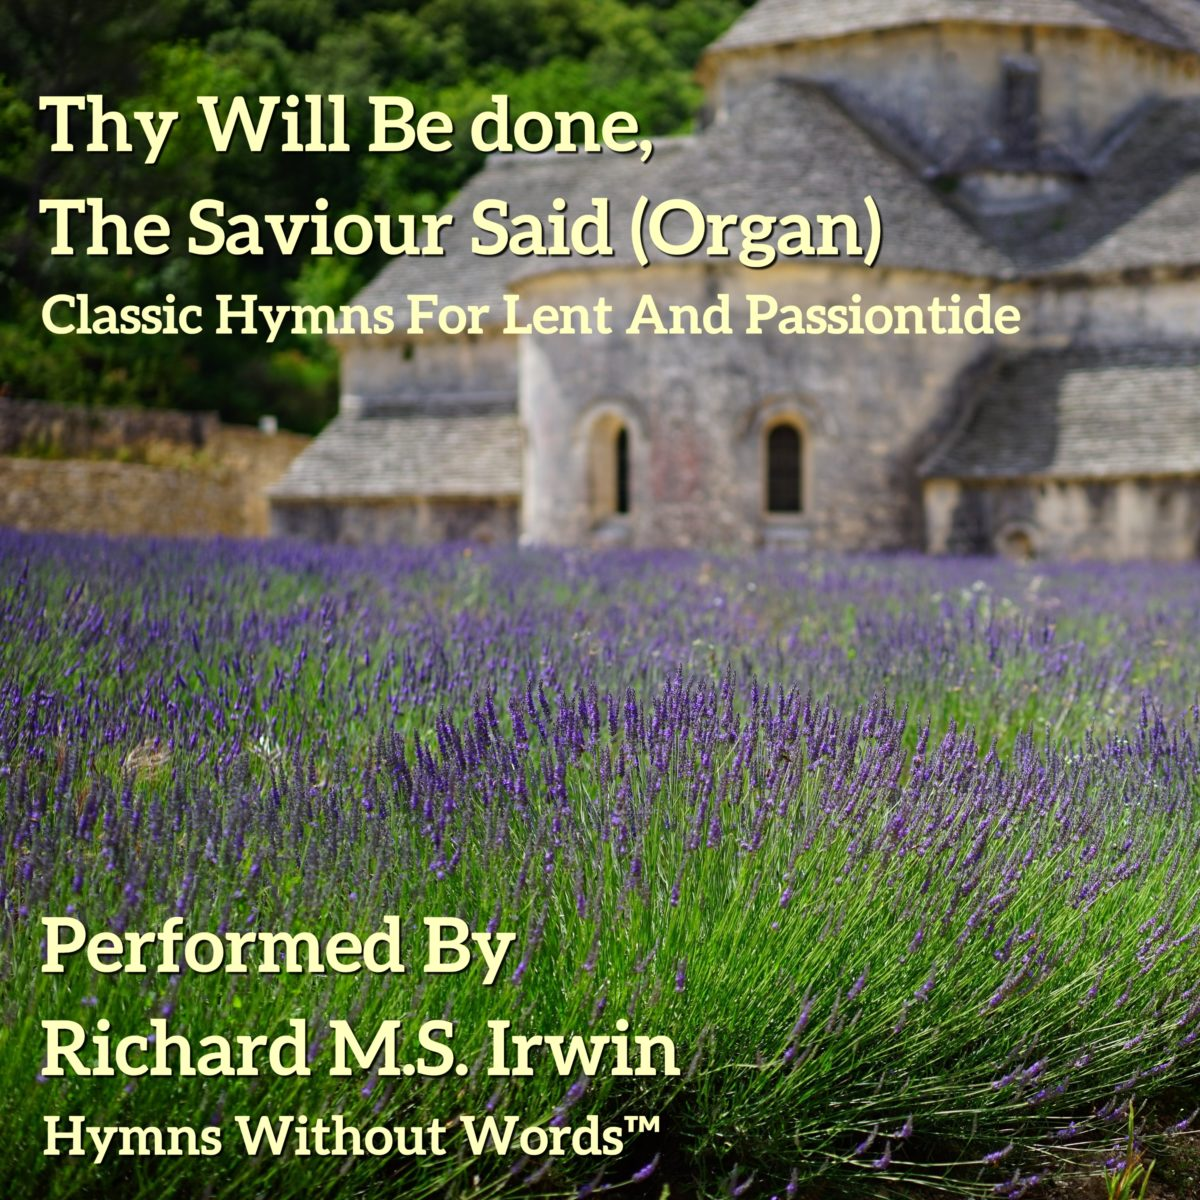 Thy Will Be Done, The Saviour Said (Organ, 4 Verses)